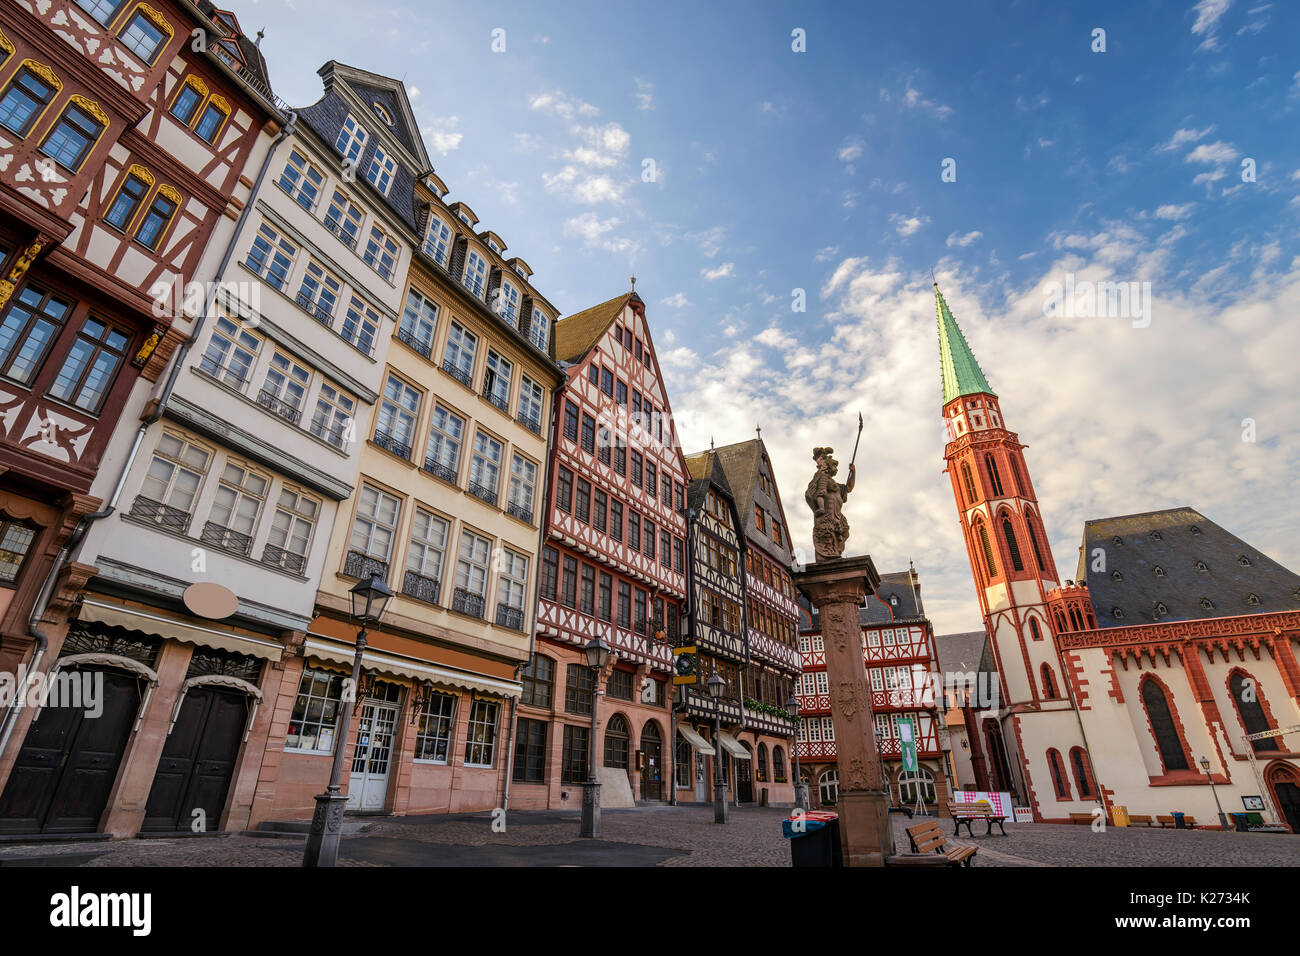 Romer (Frankfurt City Hall), Frankfurt, Germany - Stock Image